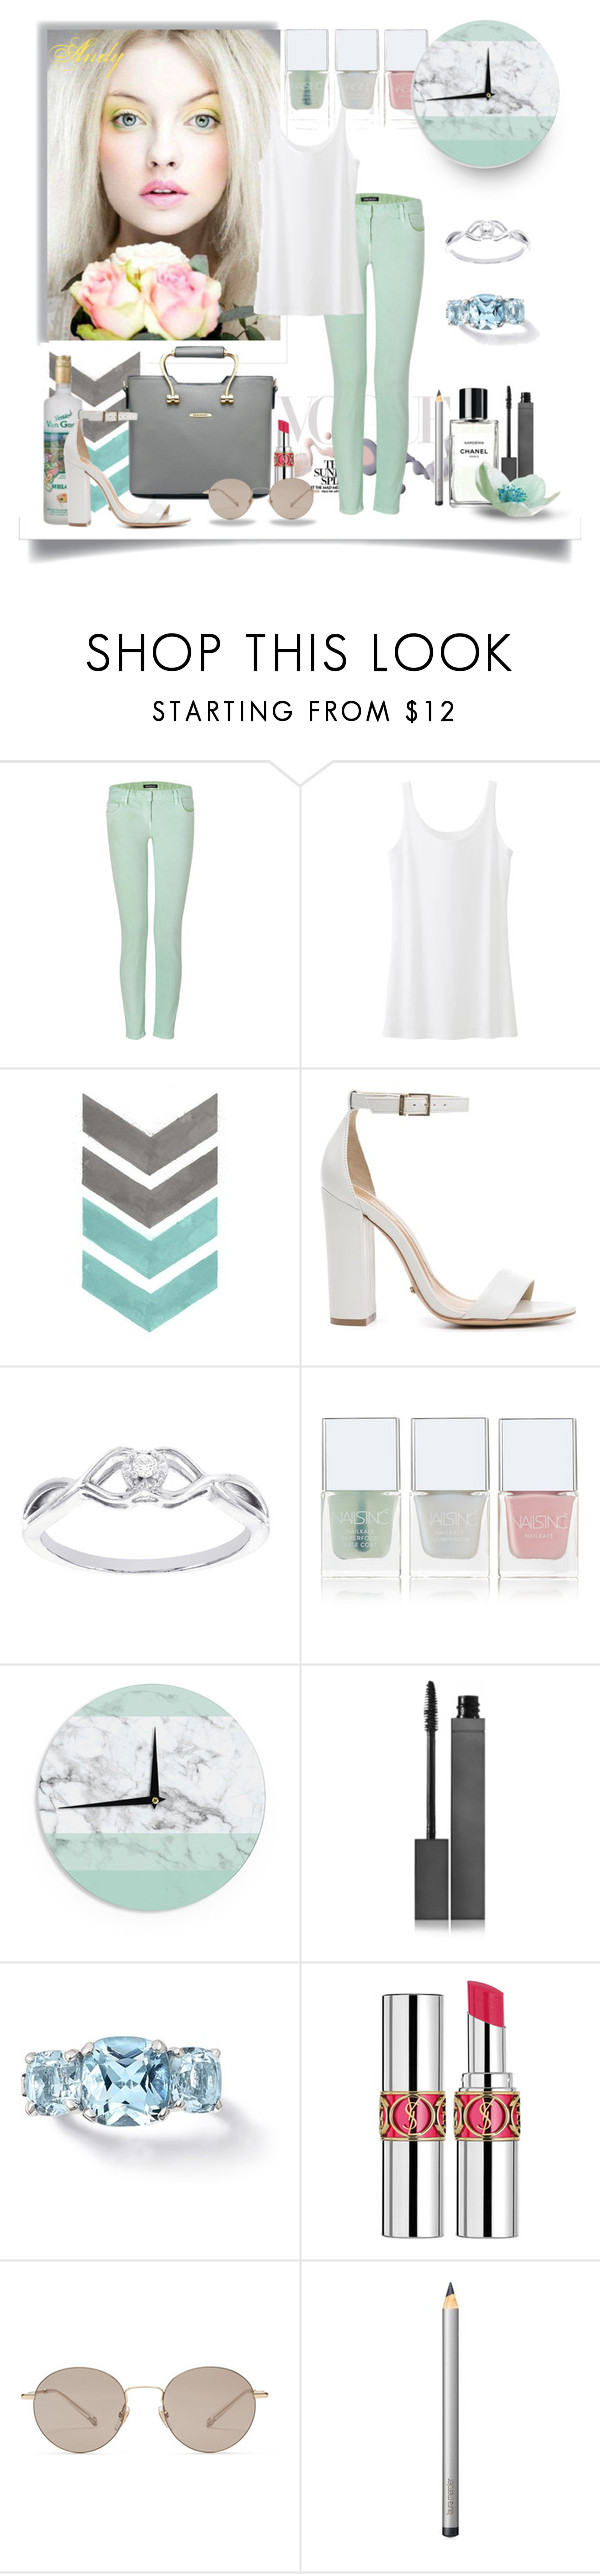 """""""Mint spring!!!"""" by andyts ❤ liked on Polyvore featuring Bottega Veneta, Giallo, Balmain, Uniqlo, Schutz, Modern Bride, Nails Inc., Burberry, Yves Saint Laurent and Gucci"""